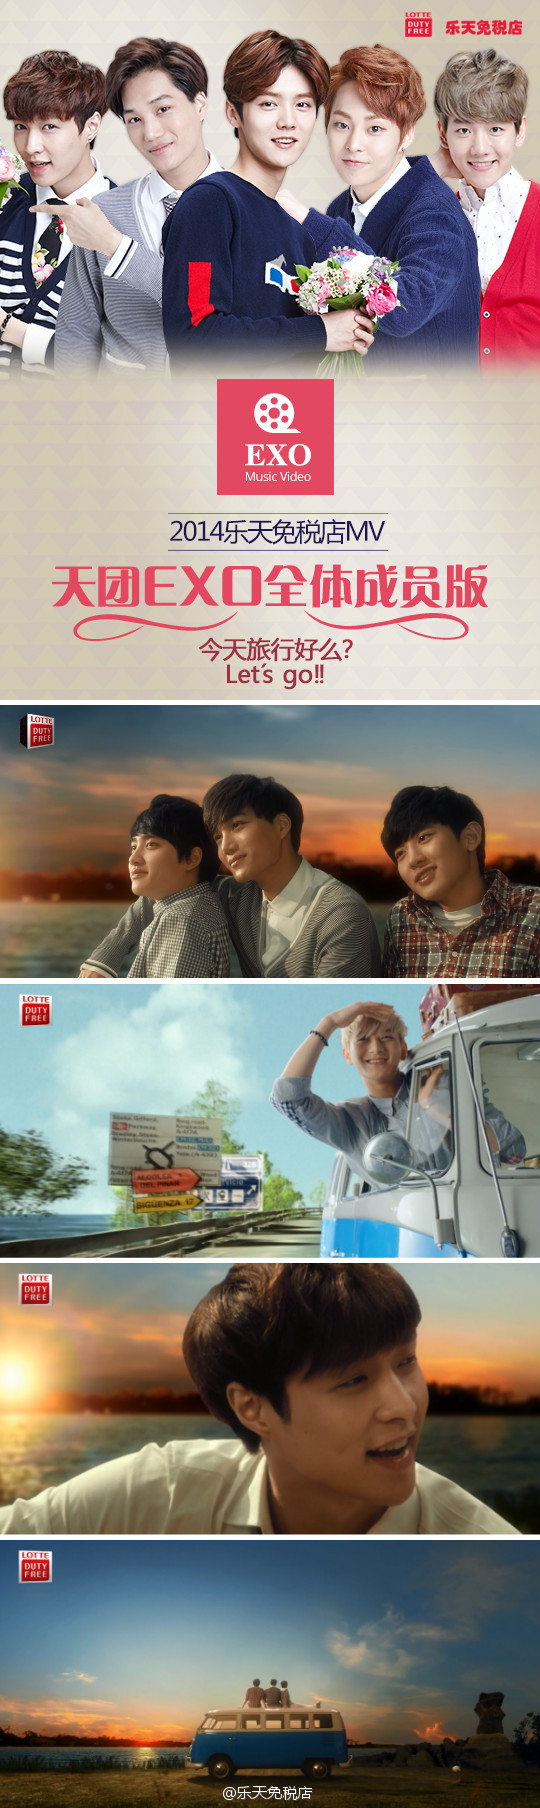 [140523] EXO New Picture for Lotte Duty Free CF [21]